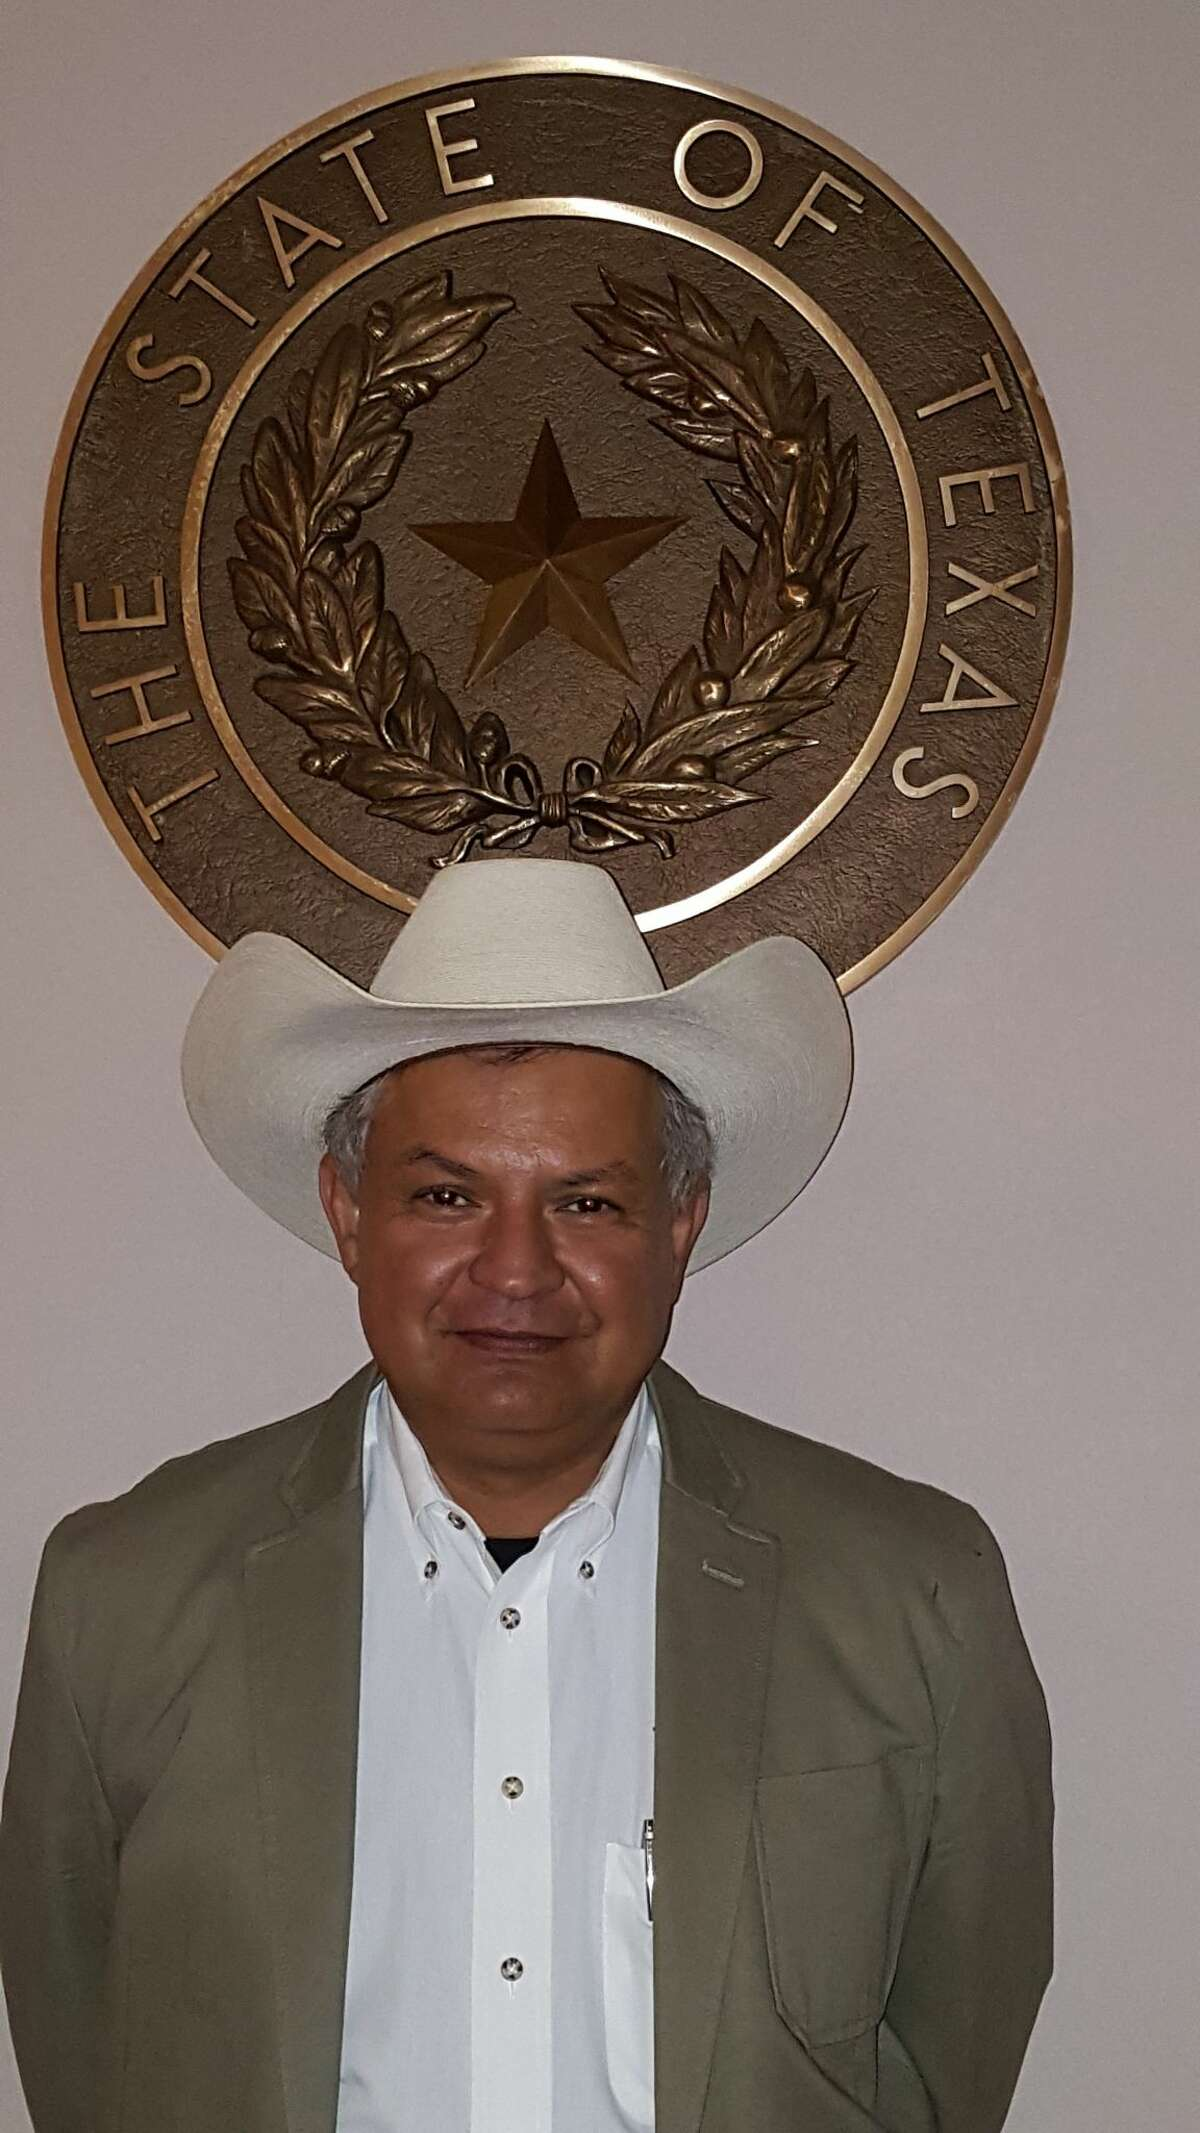 Eusevio Salinas Jr. is a Zavala County Sheriff who maintains an office in Crystal City.